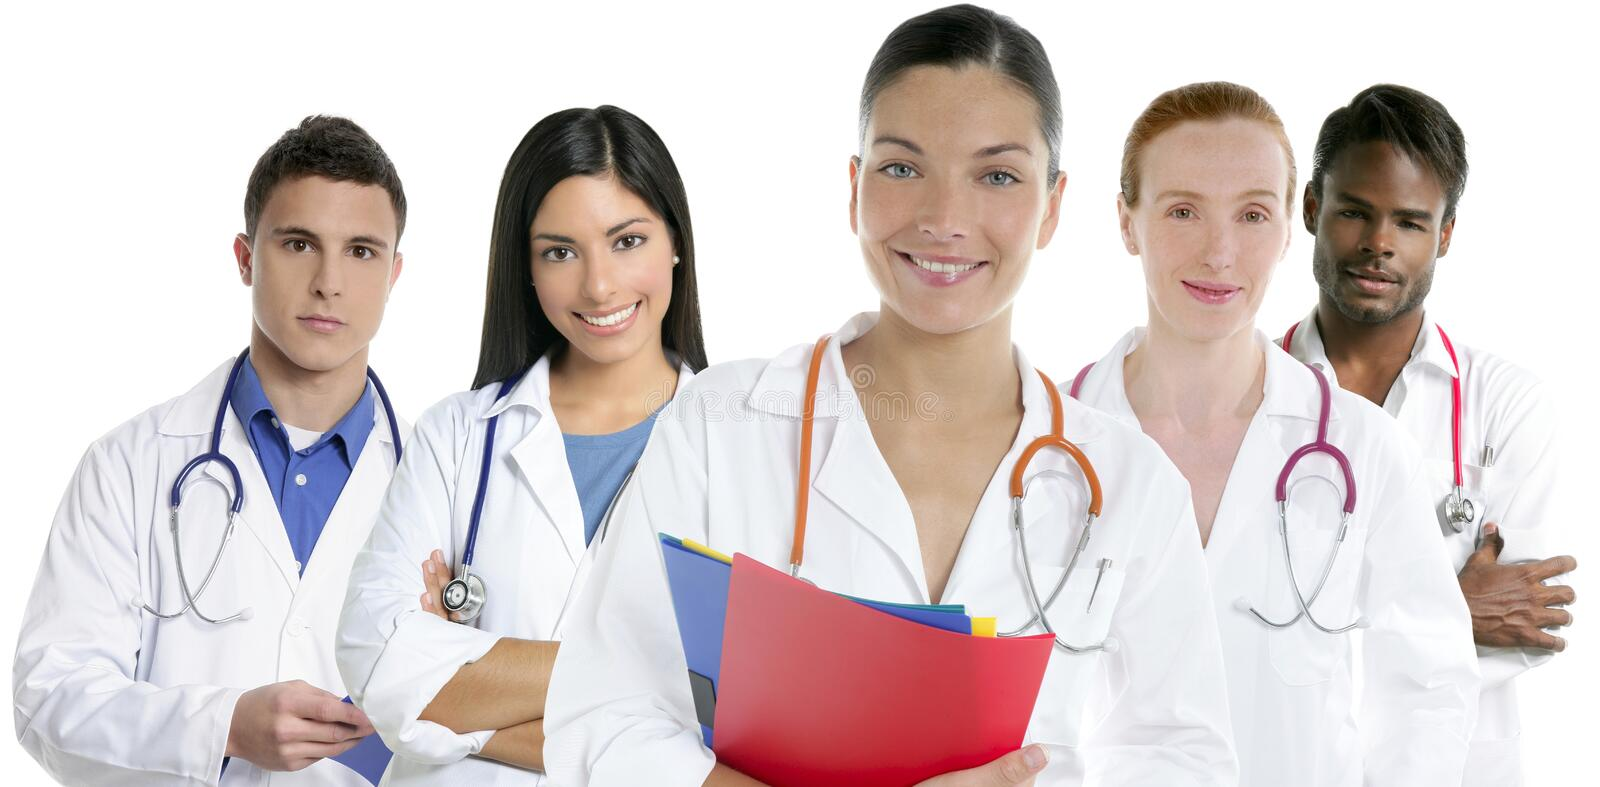 Download Doctors Team Group In A Row White Background Stock Image - Image: 11602145